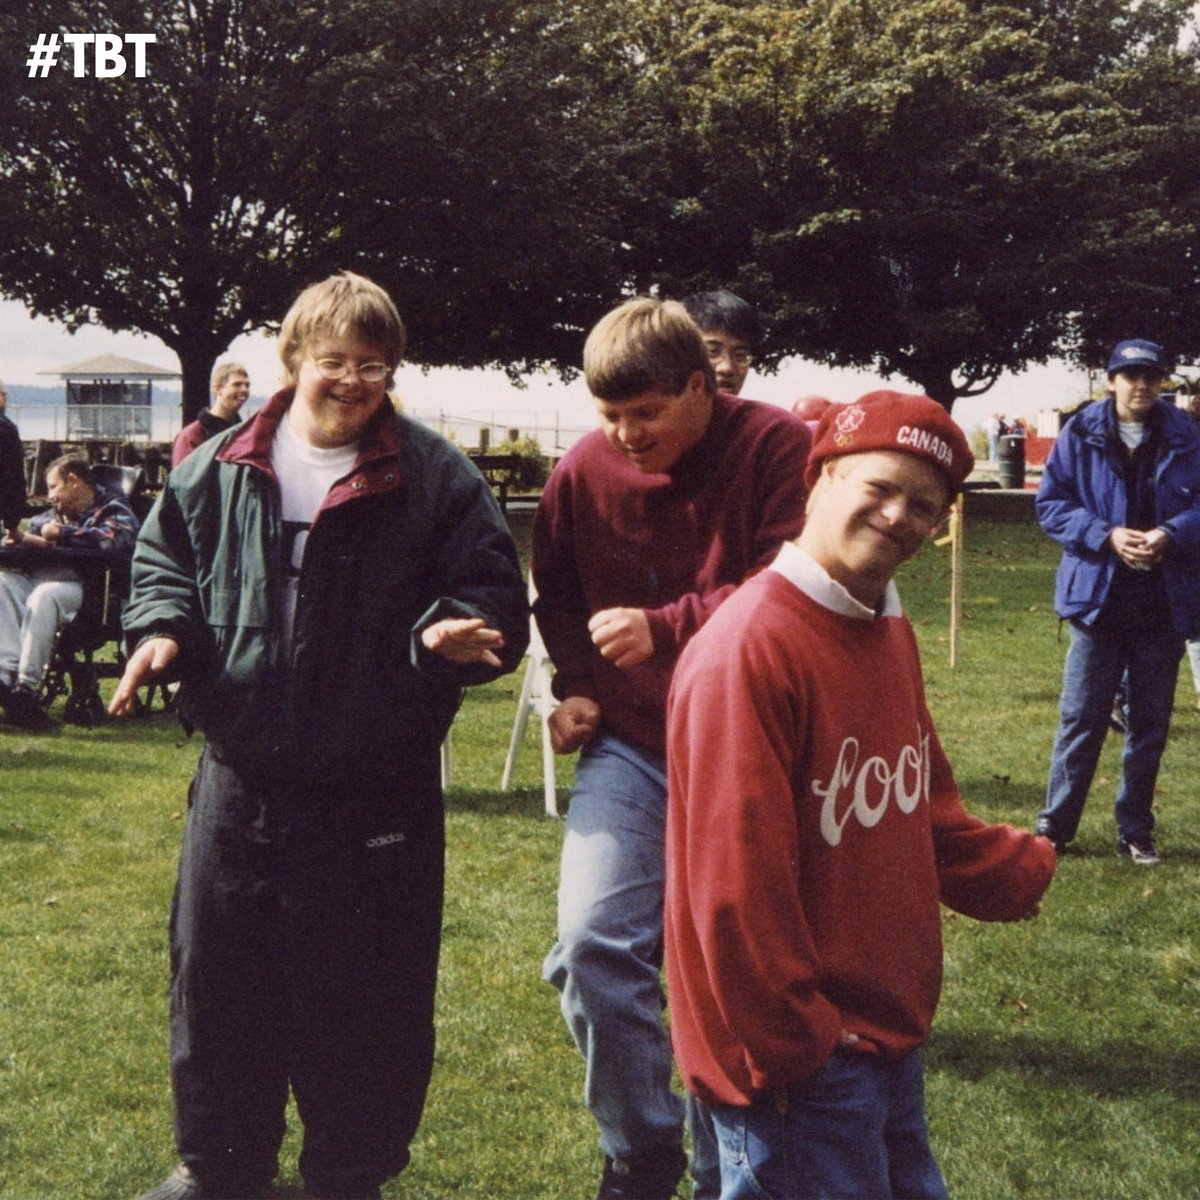 #TBT 20 years ago at the Summer Family BBQ! #NSConneXions #Throwback #InclusionMatters #Summertime #BeHappy #NorthVan #NorthShore #SummerBBQ https://t.co/9sKIuEgJiq